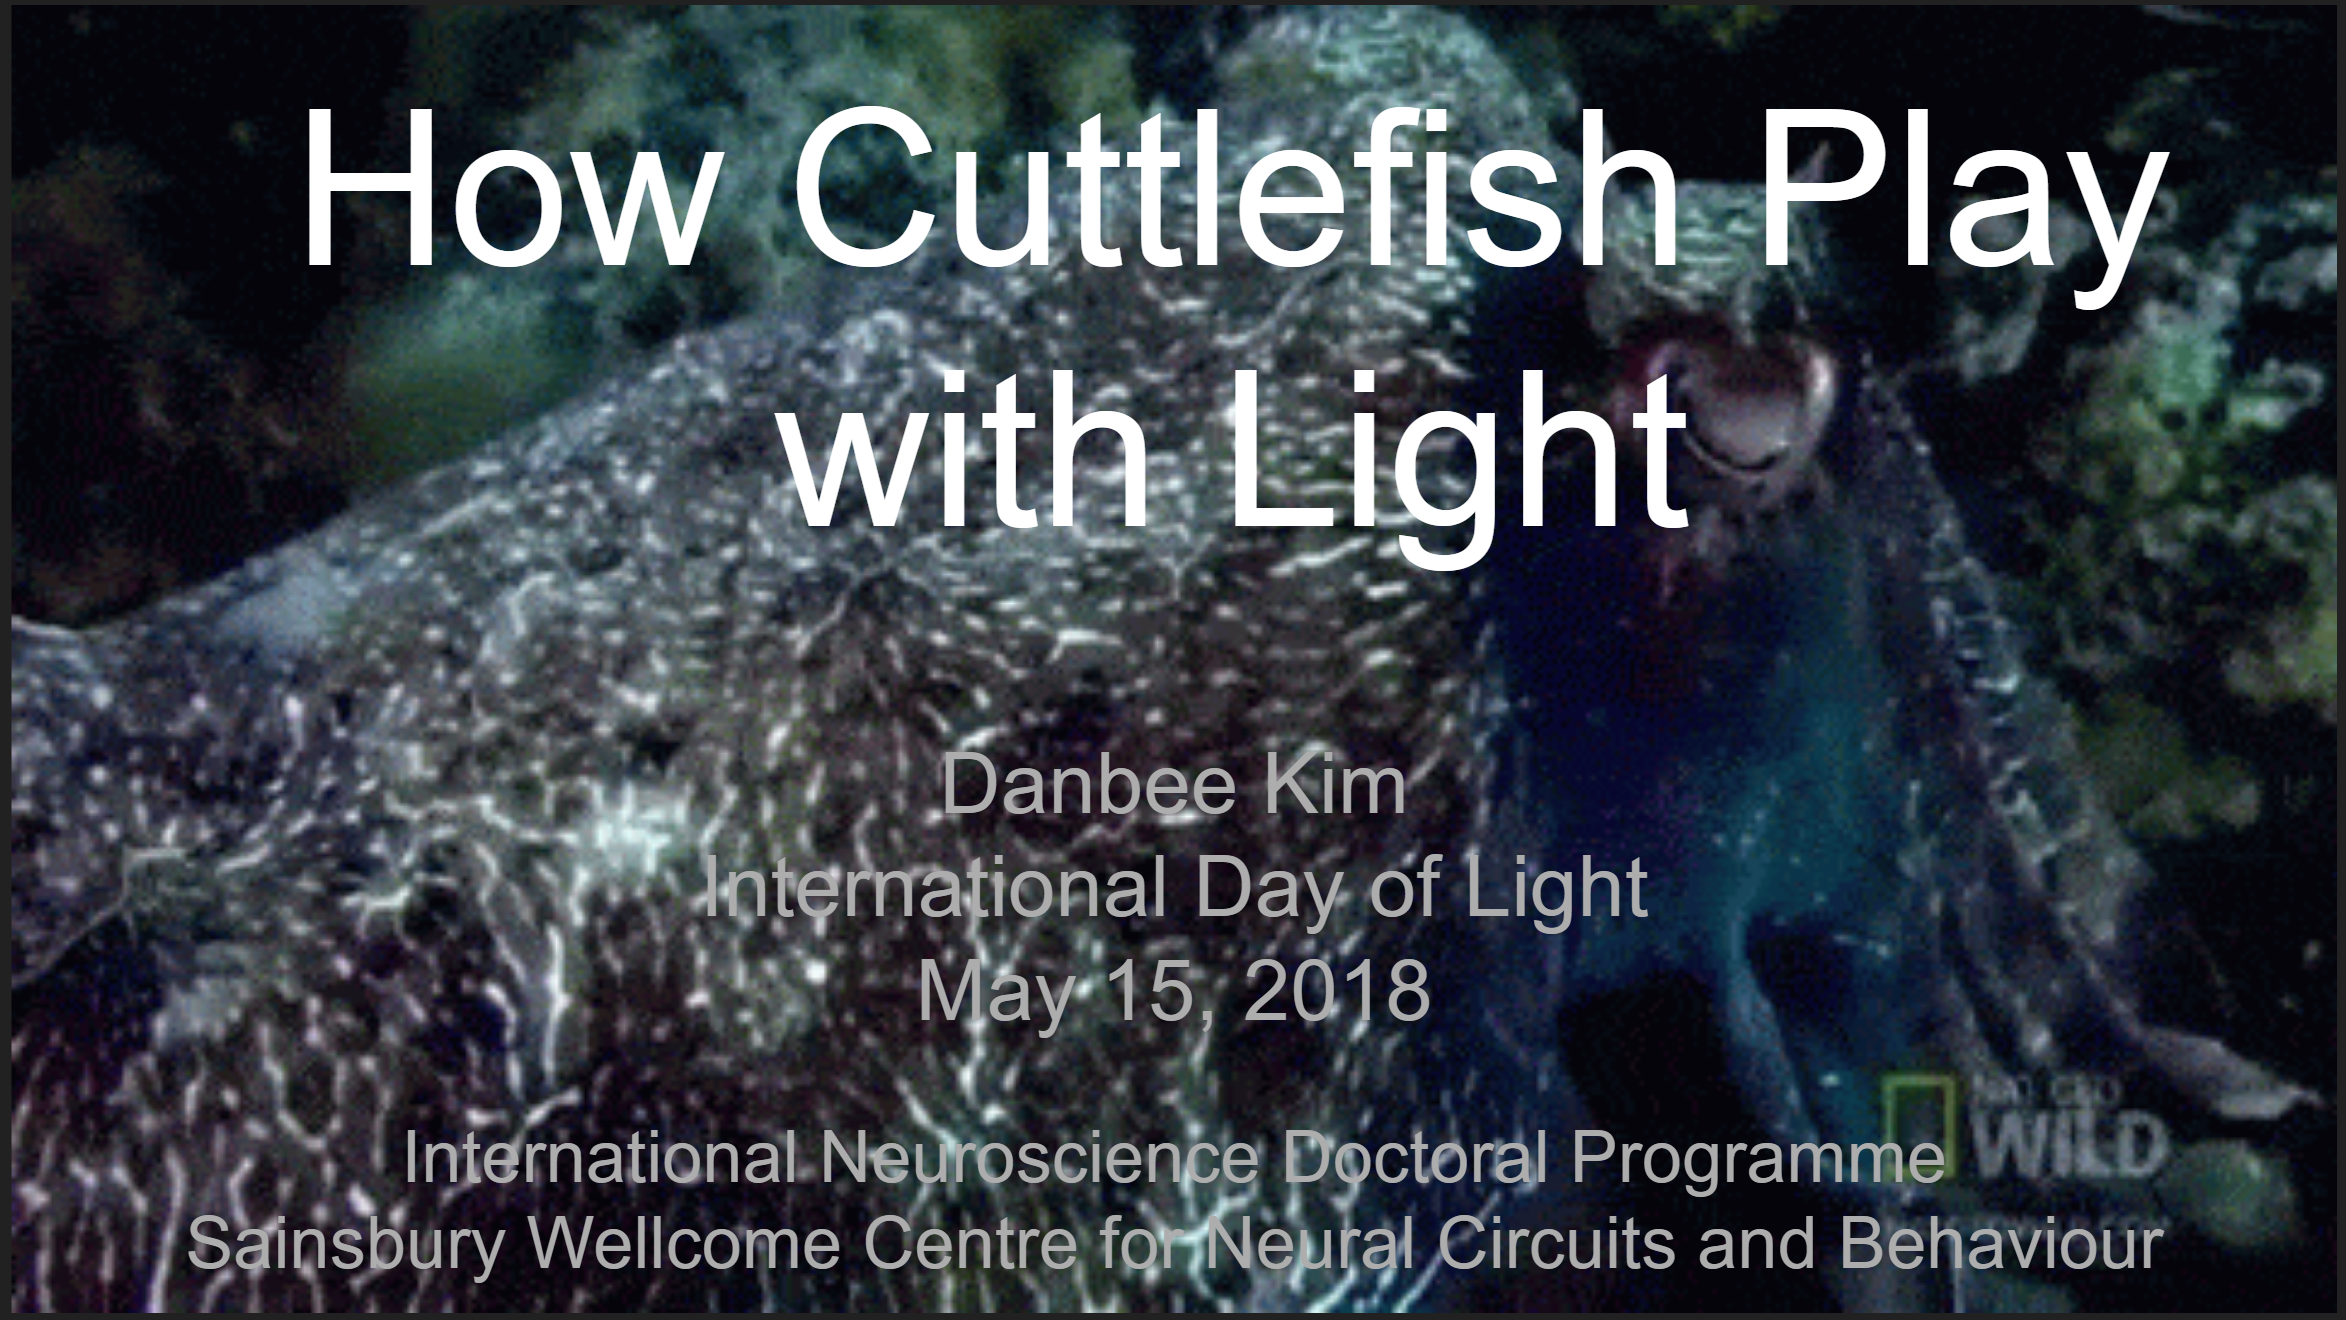 Danbee talks about cuttlefish at UCL's 2018 International Day of Light celebration.